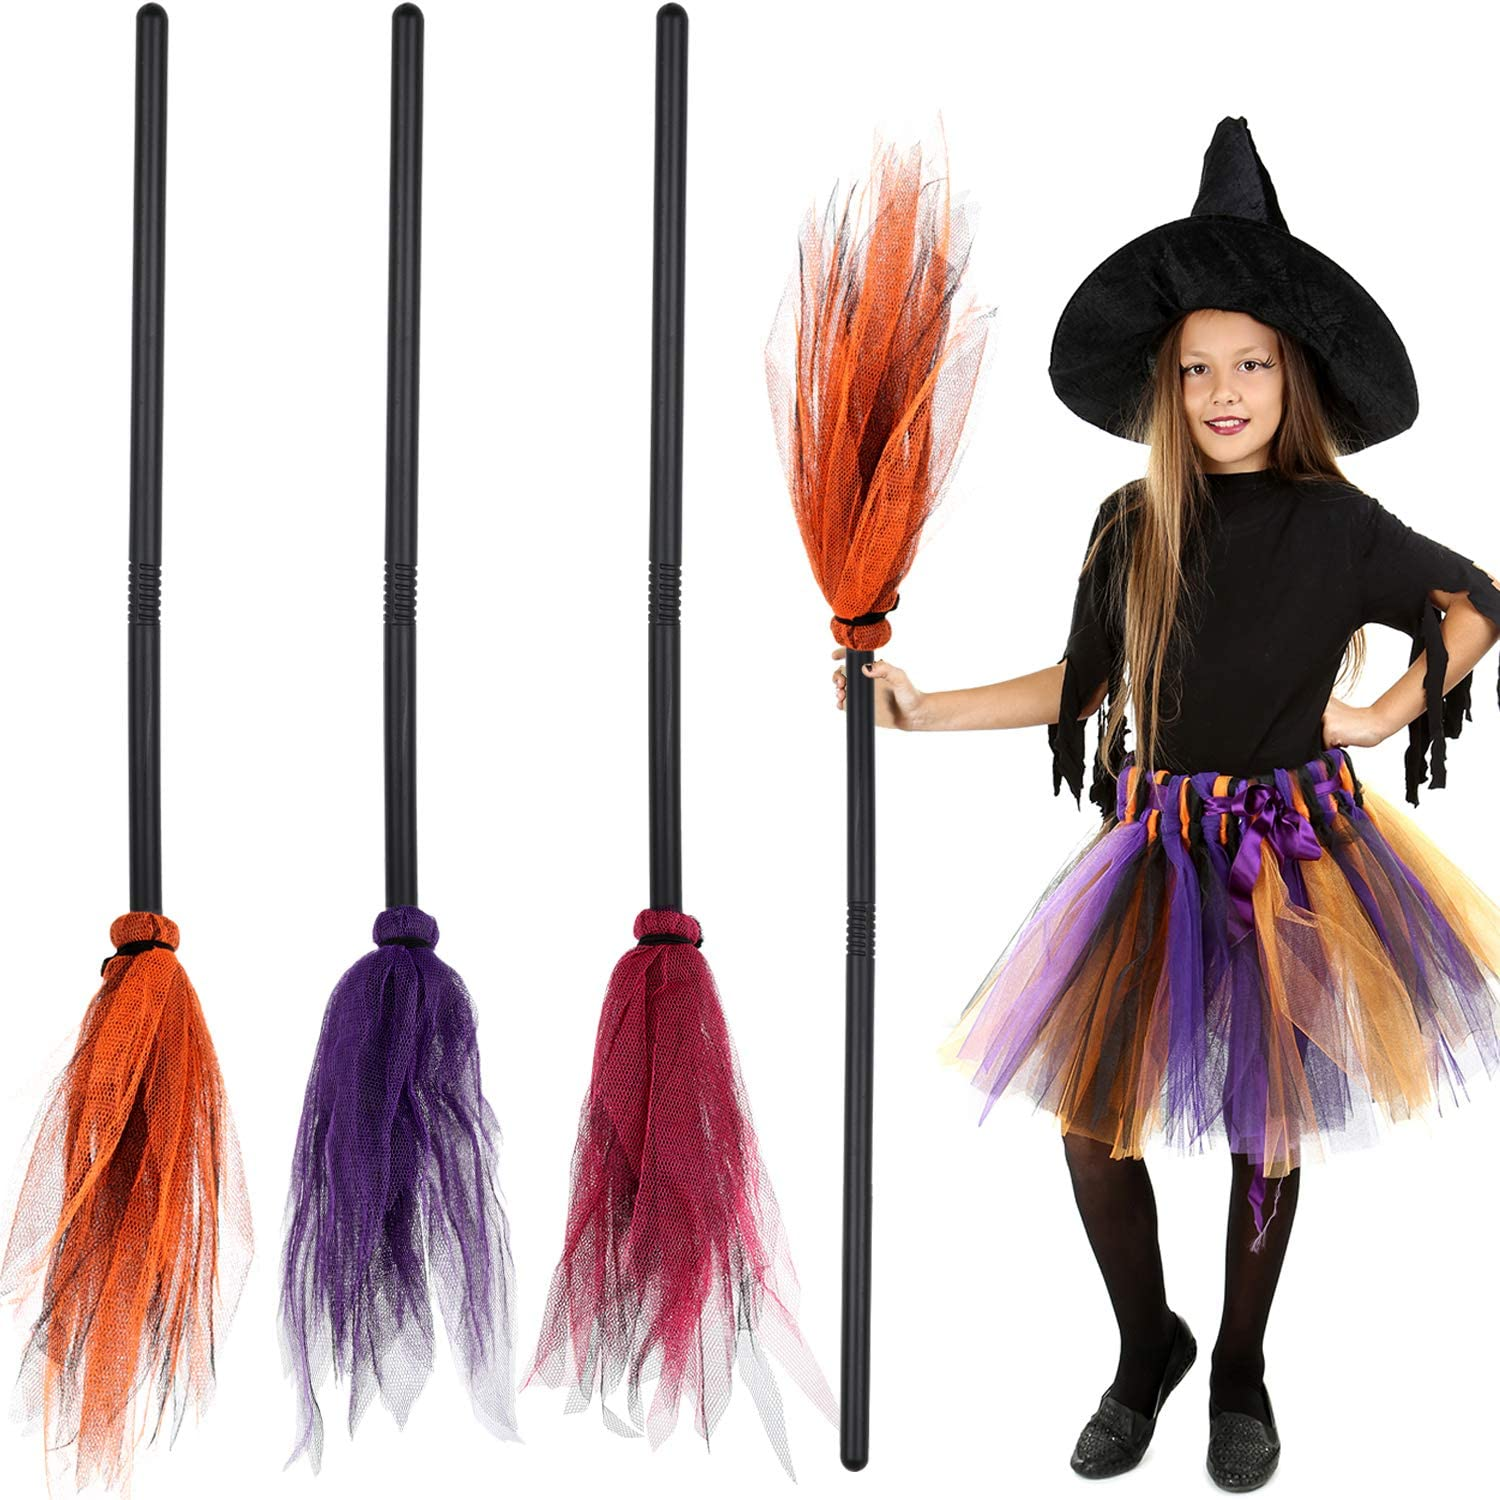 3 Pieces Halloween Witch Broom Plastic Witch Broomstick Kids Broom Props Witch Broom Party Decoration for Halloween Costume Decoration, 3 Colors (Red, Purple, Orange)